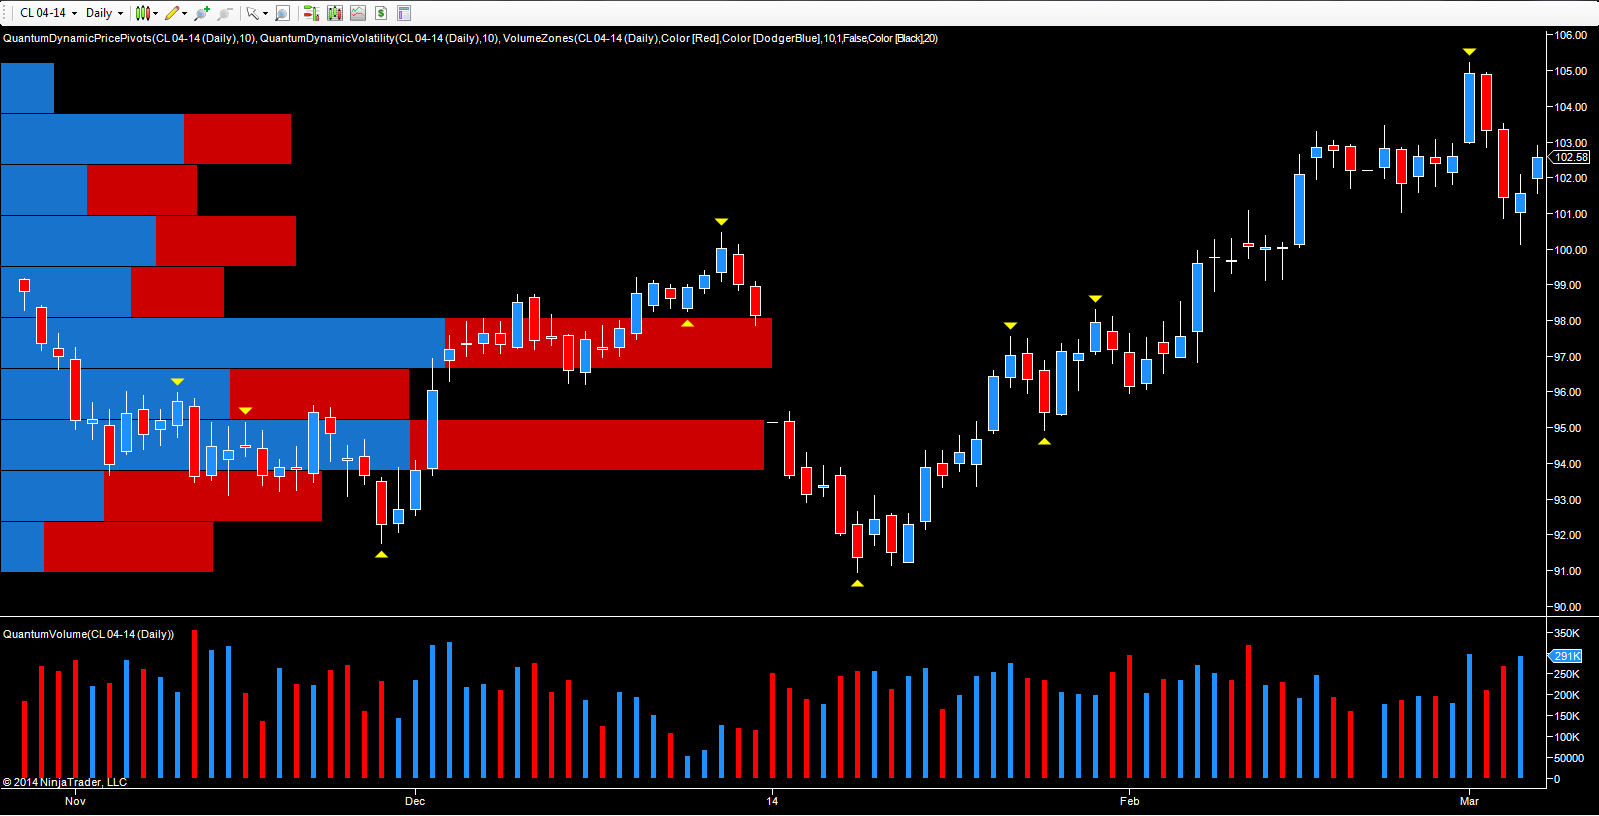 April oil futures - daily chart